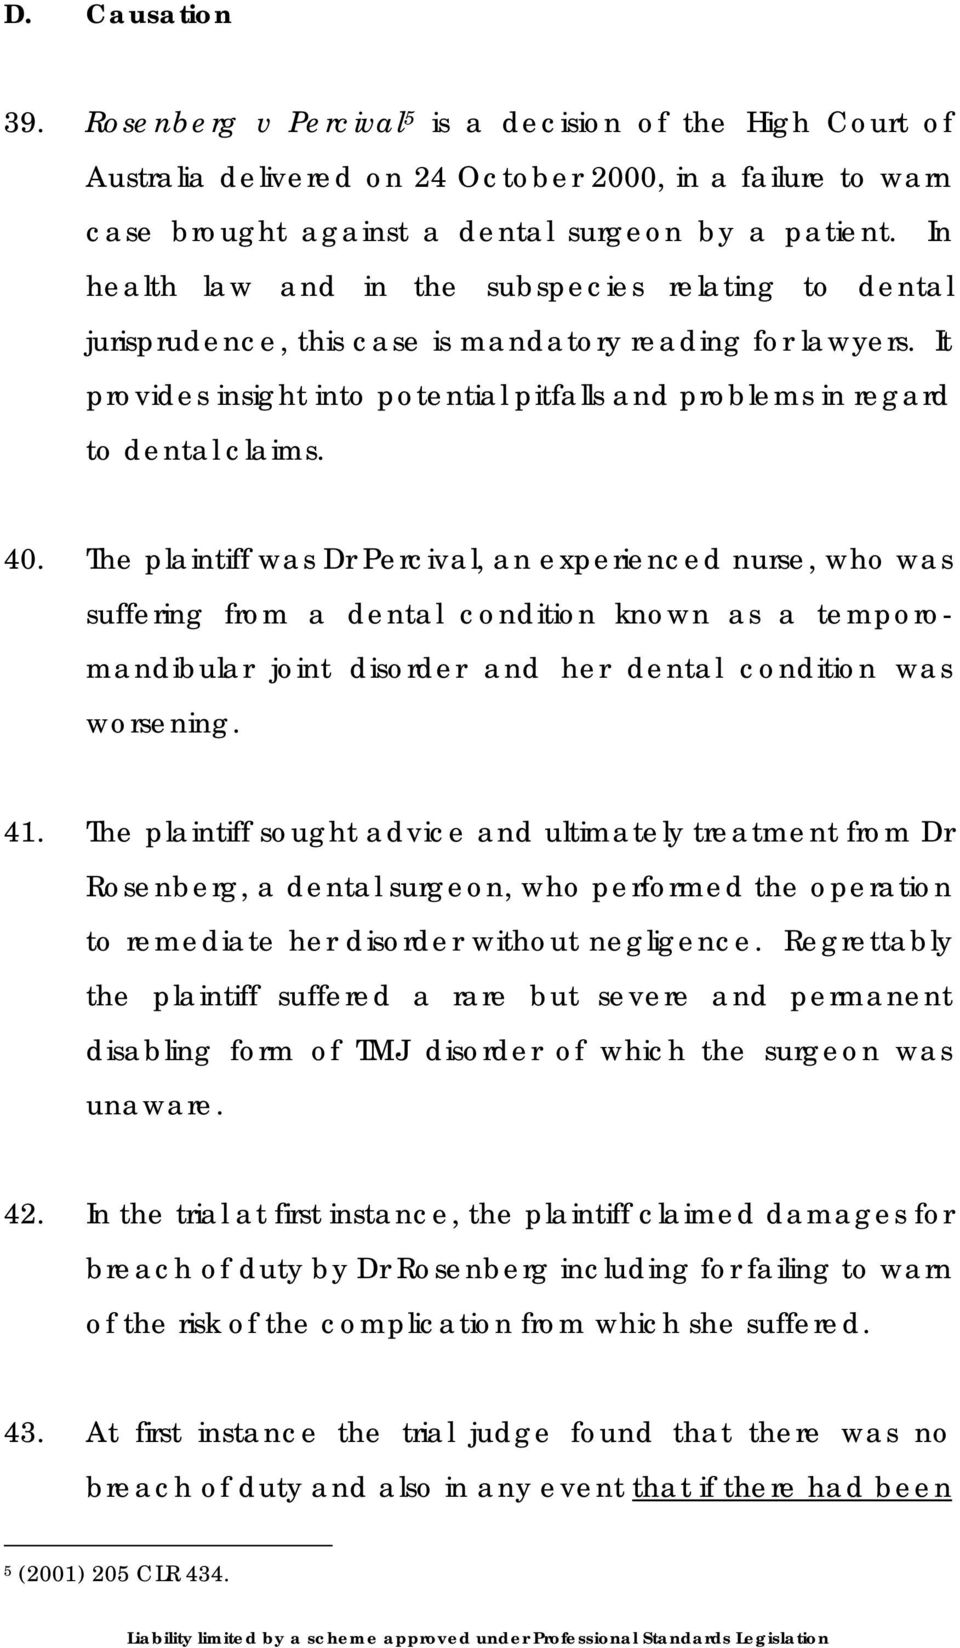 40. The plaintiff was Dr Percival, an experienced nurse, who was suffering from a dental condition known as a temporomandibular joint disorder and her dental condition was worsening. 41.